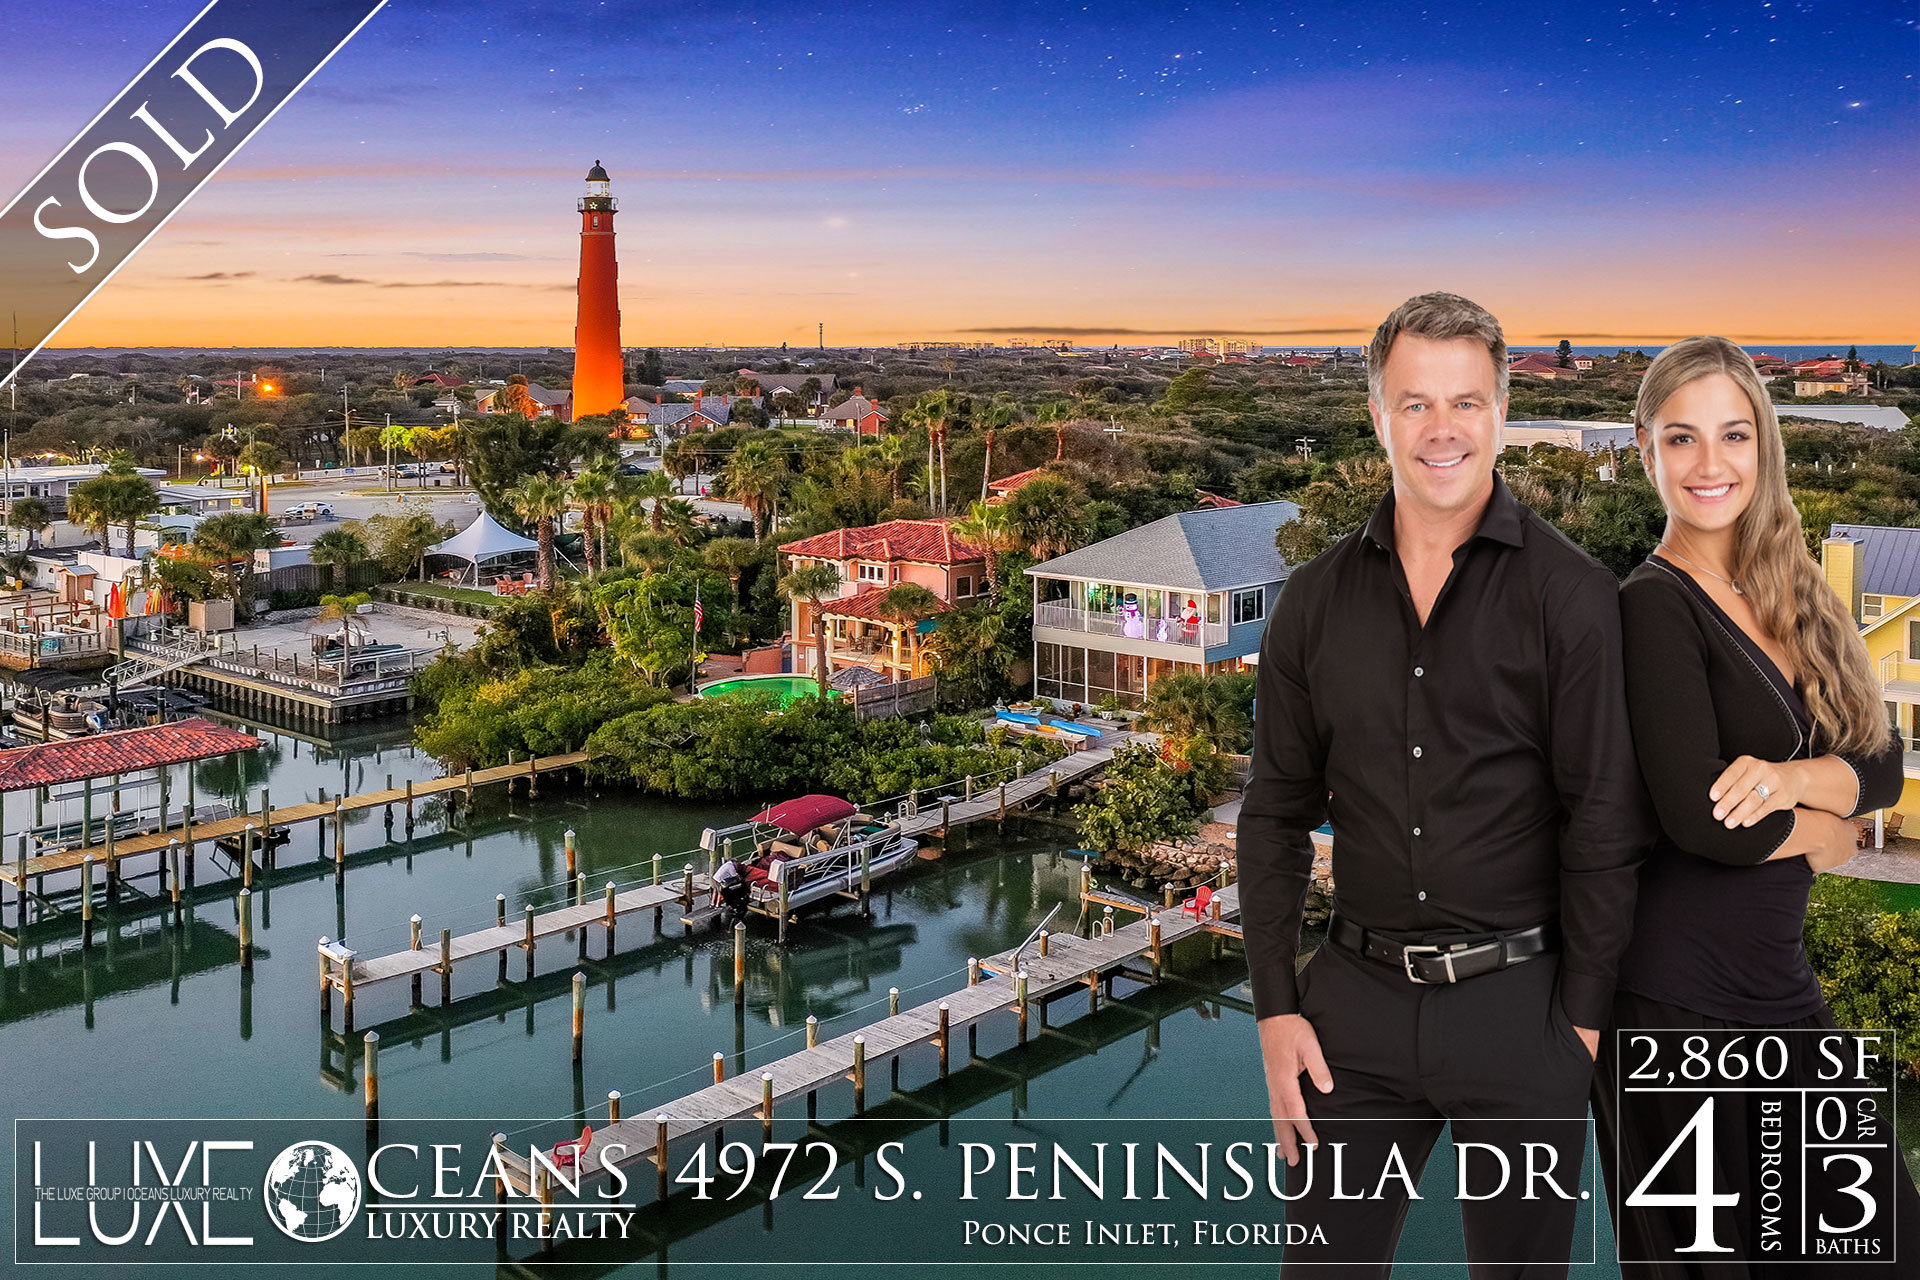 Ponce Inlet Riverfront Homes For Sale - 4972 S Peninsula Drive Waterfront Homes Sold